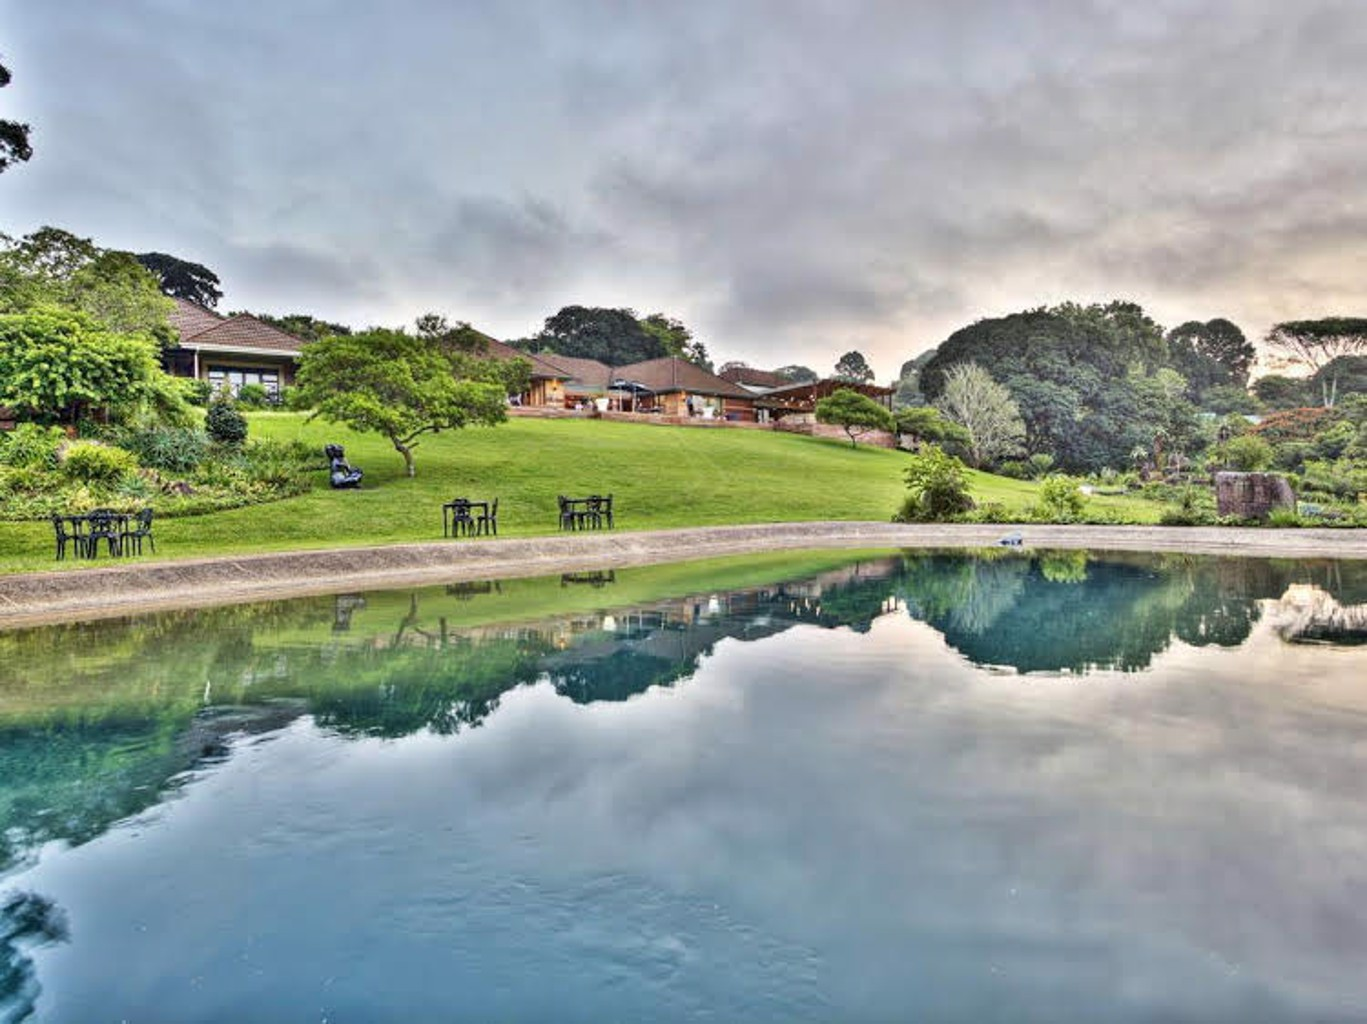 Gallery image of Makaranga Lodge